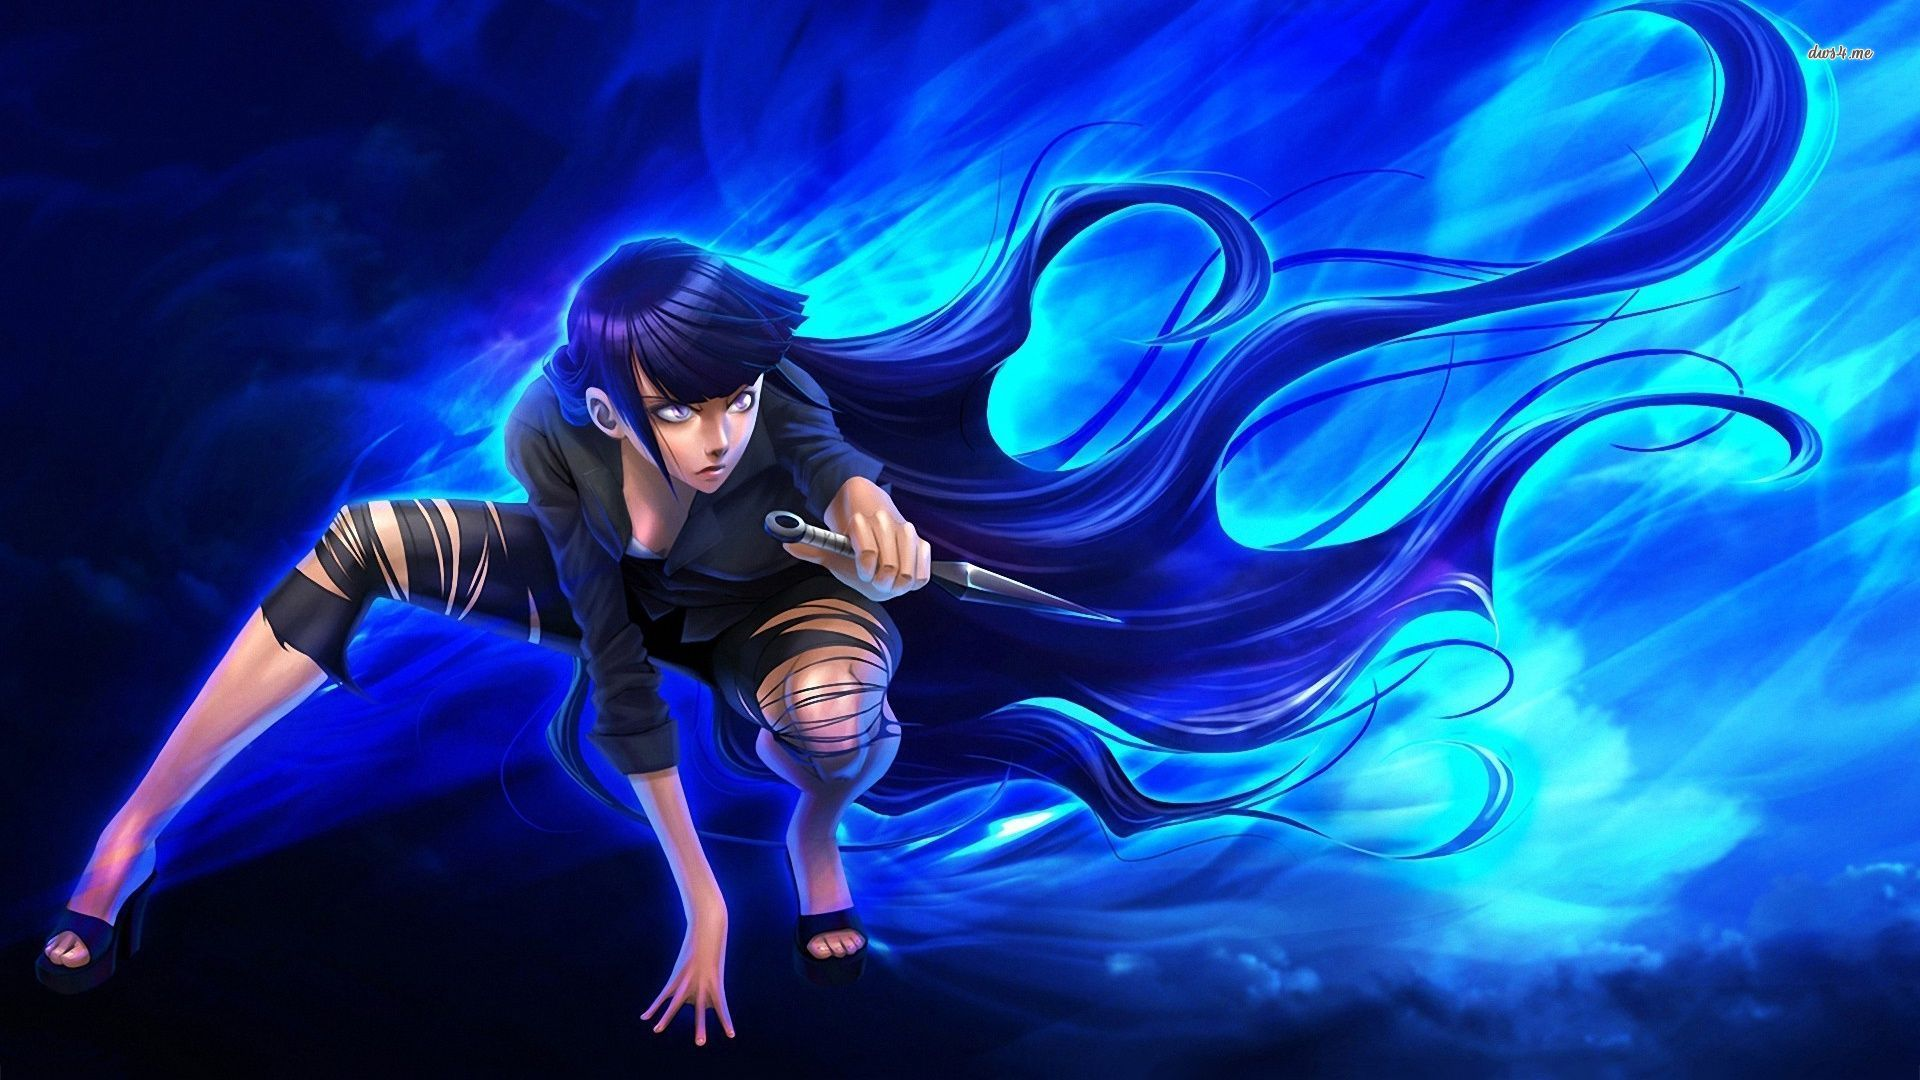 wallpaper windows 7 anime naruto